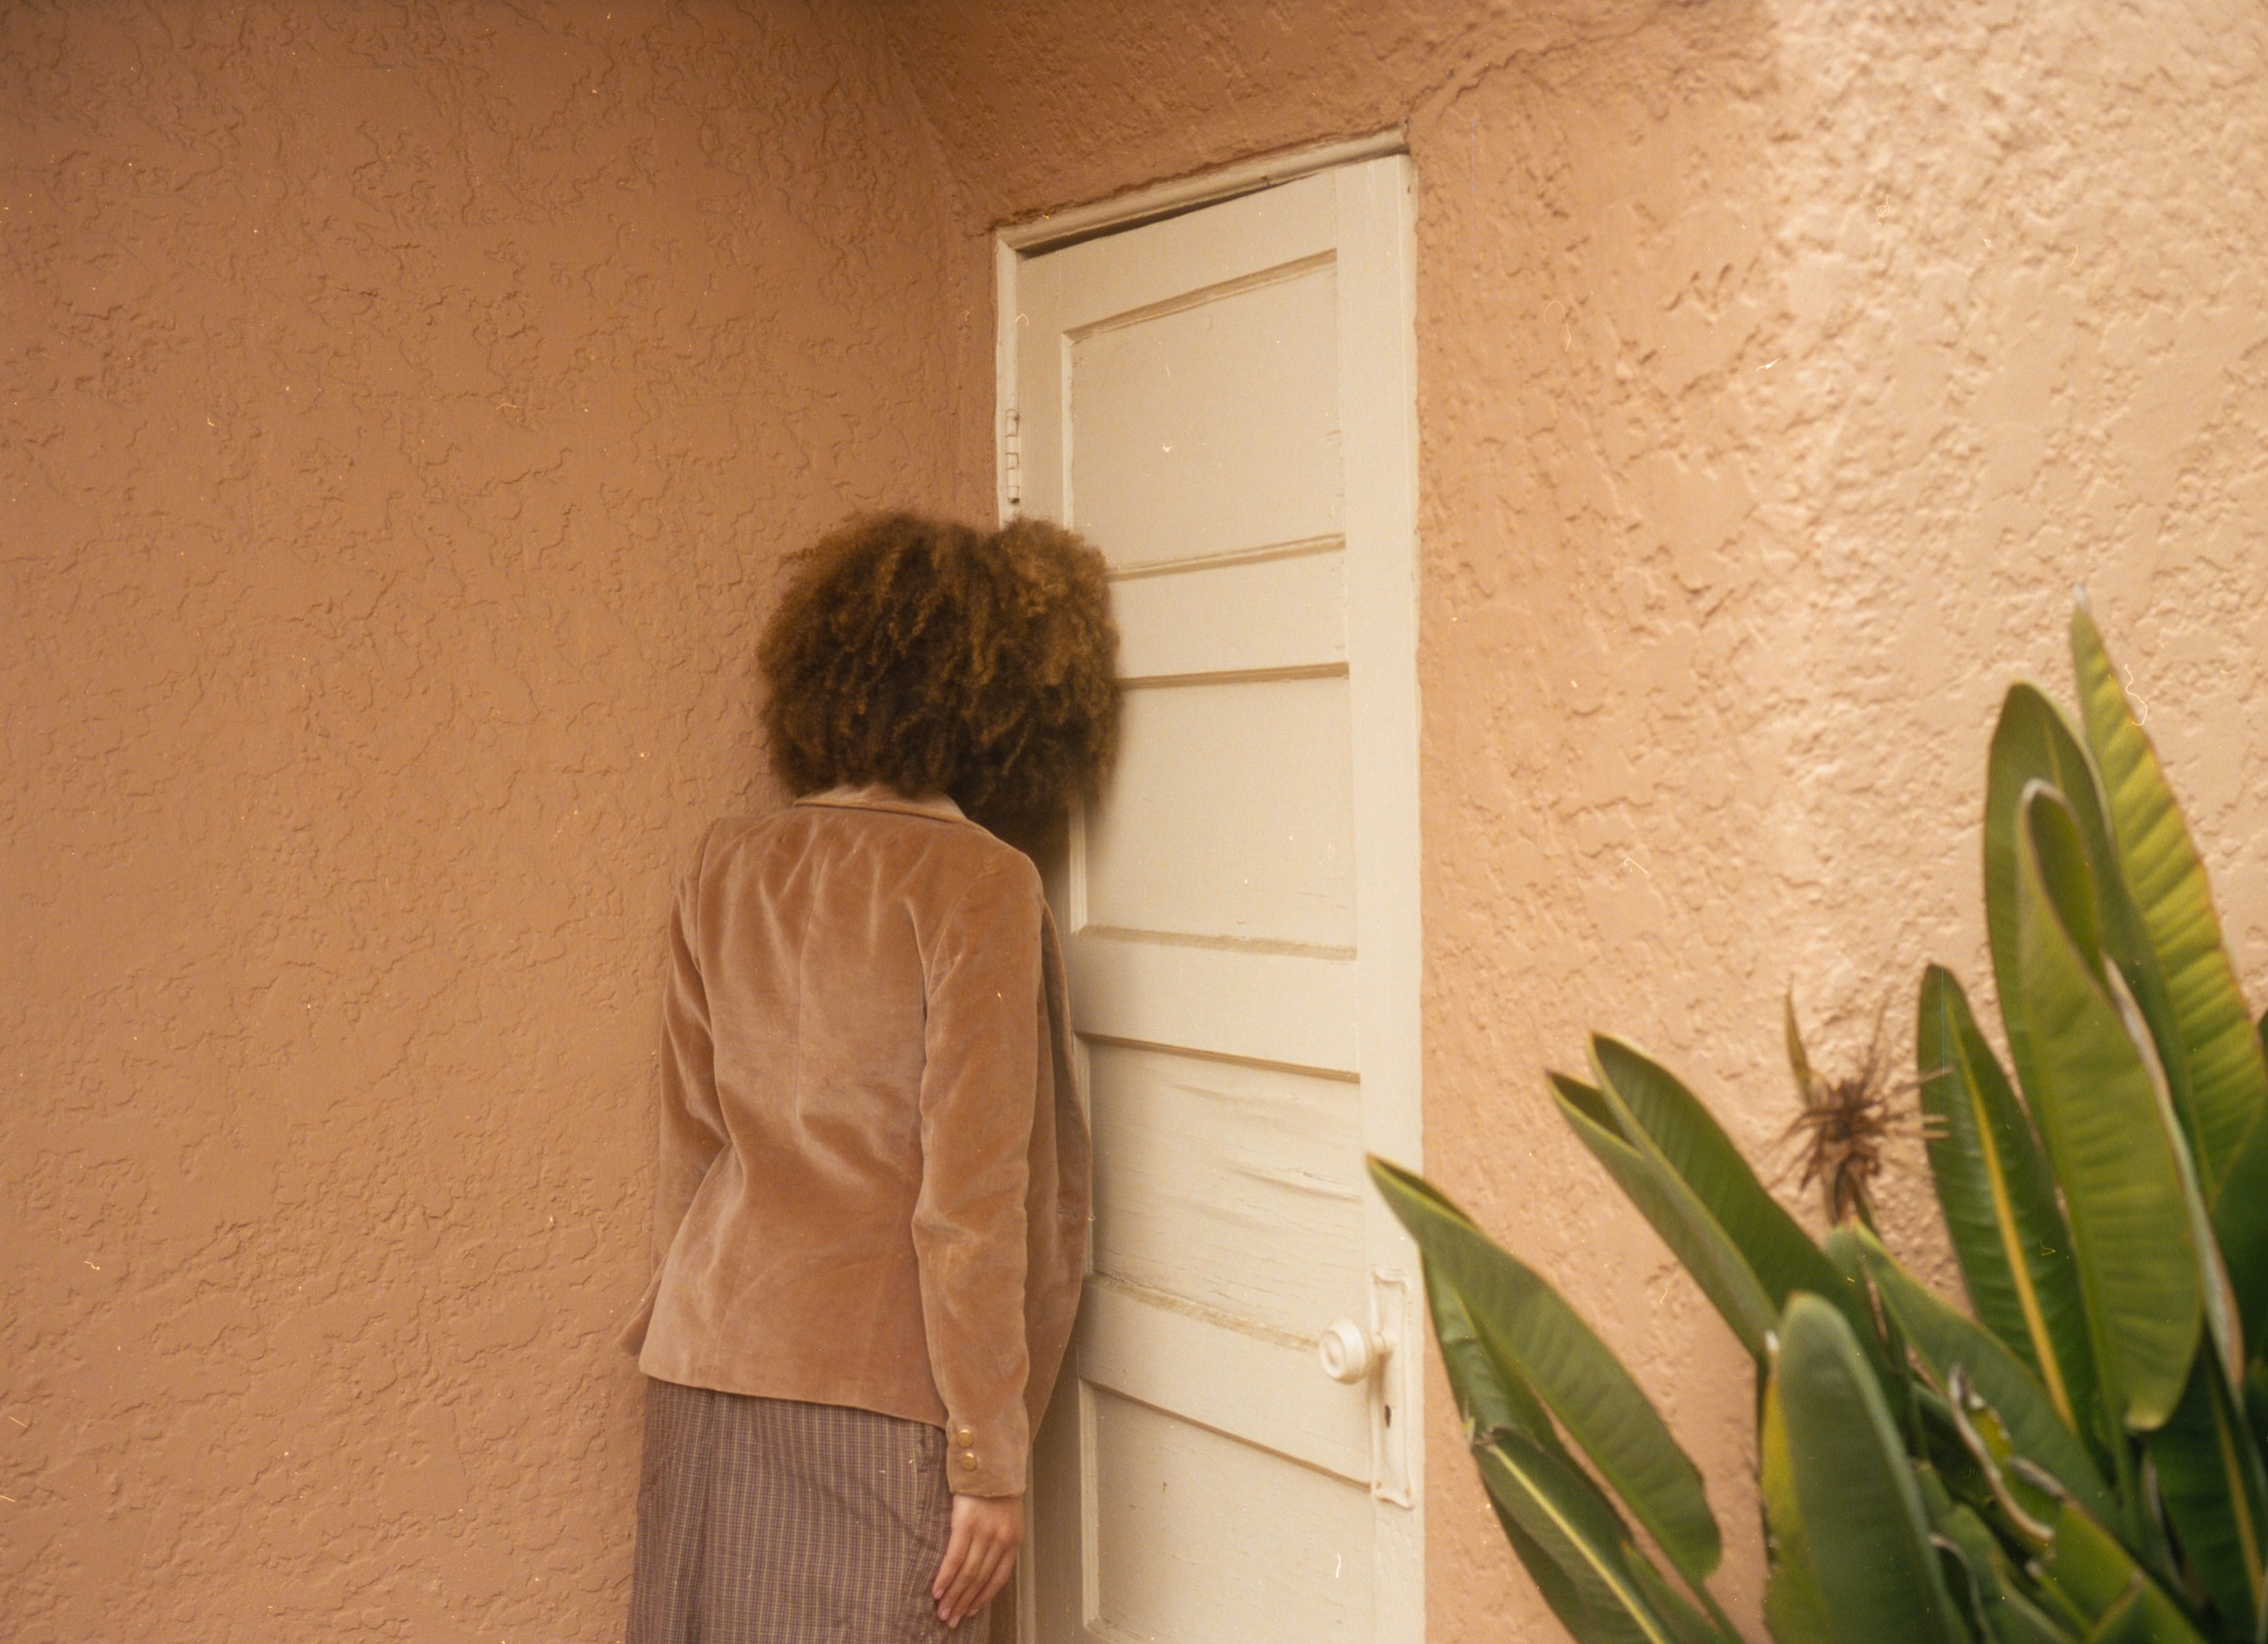 A person facing away from the camera leaning their head against a door in frustration or sadness.